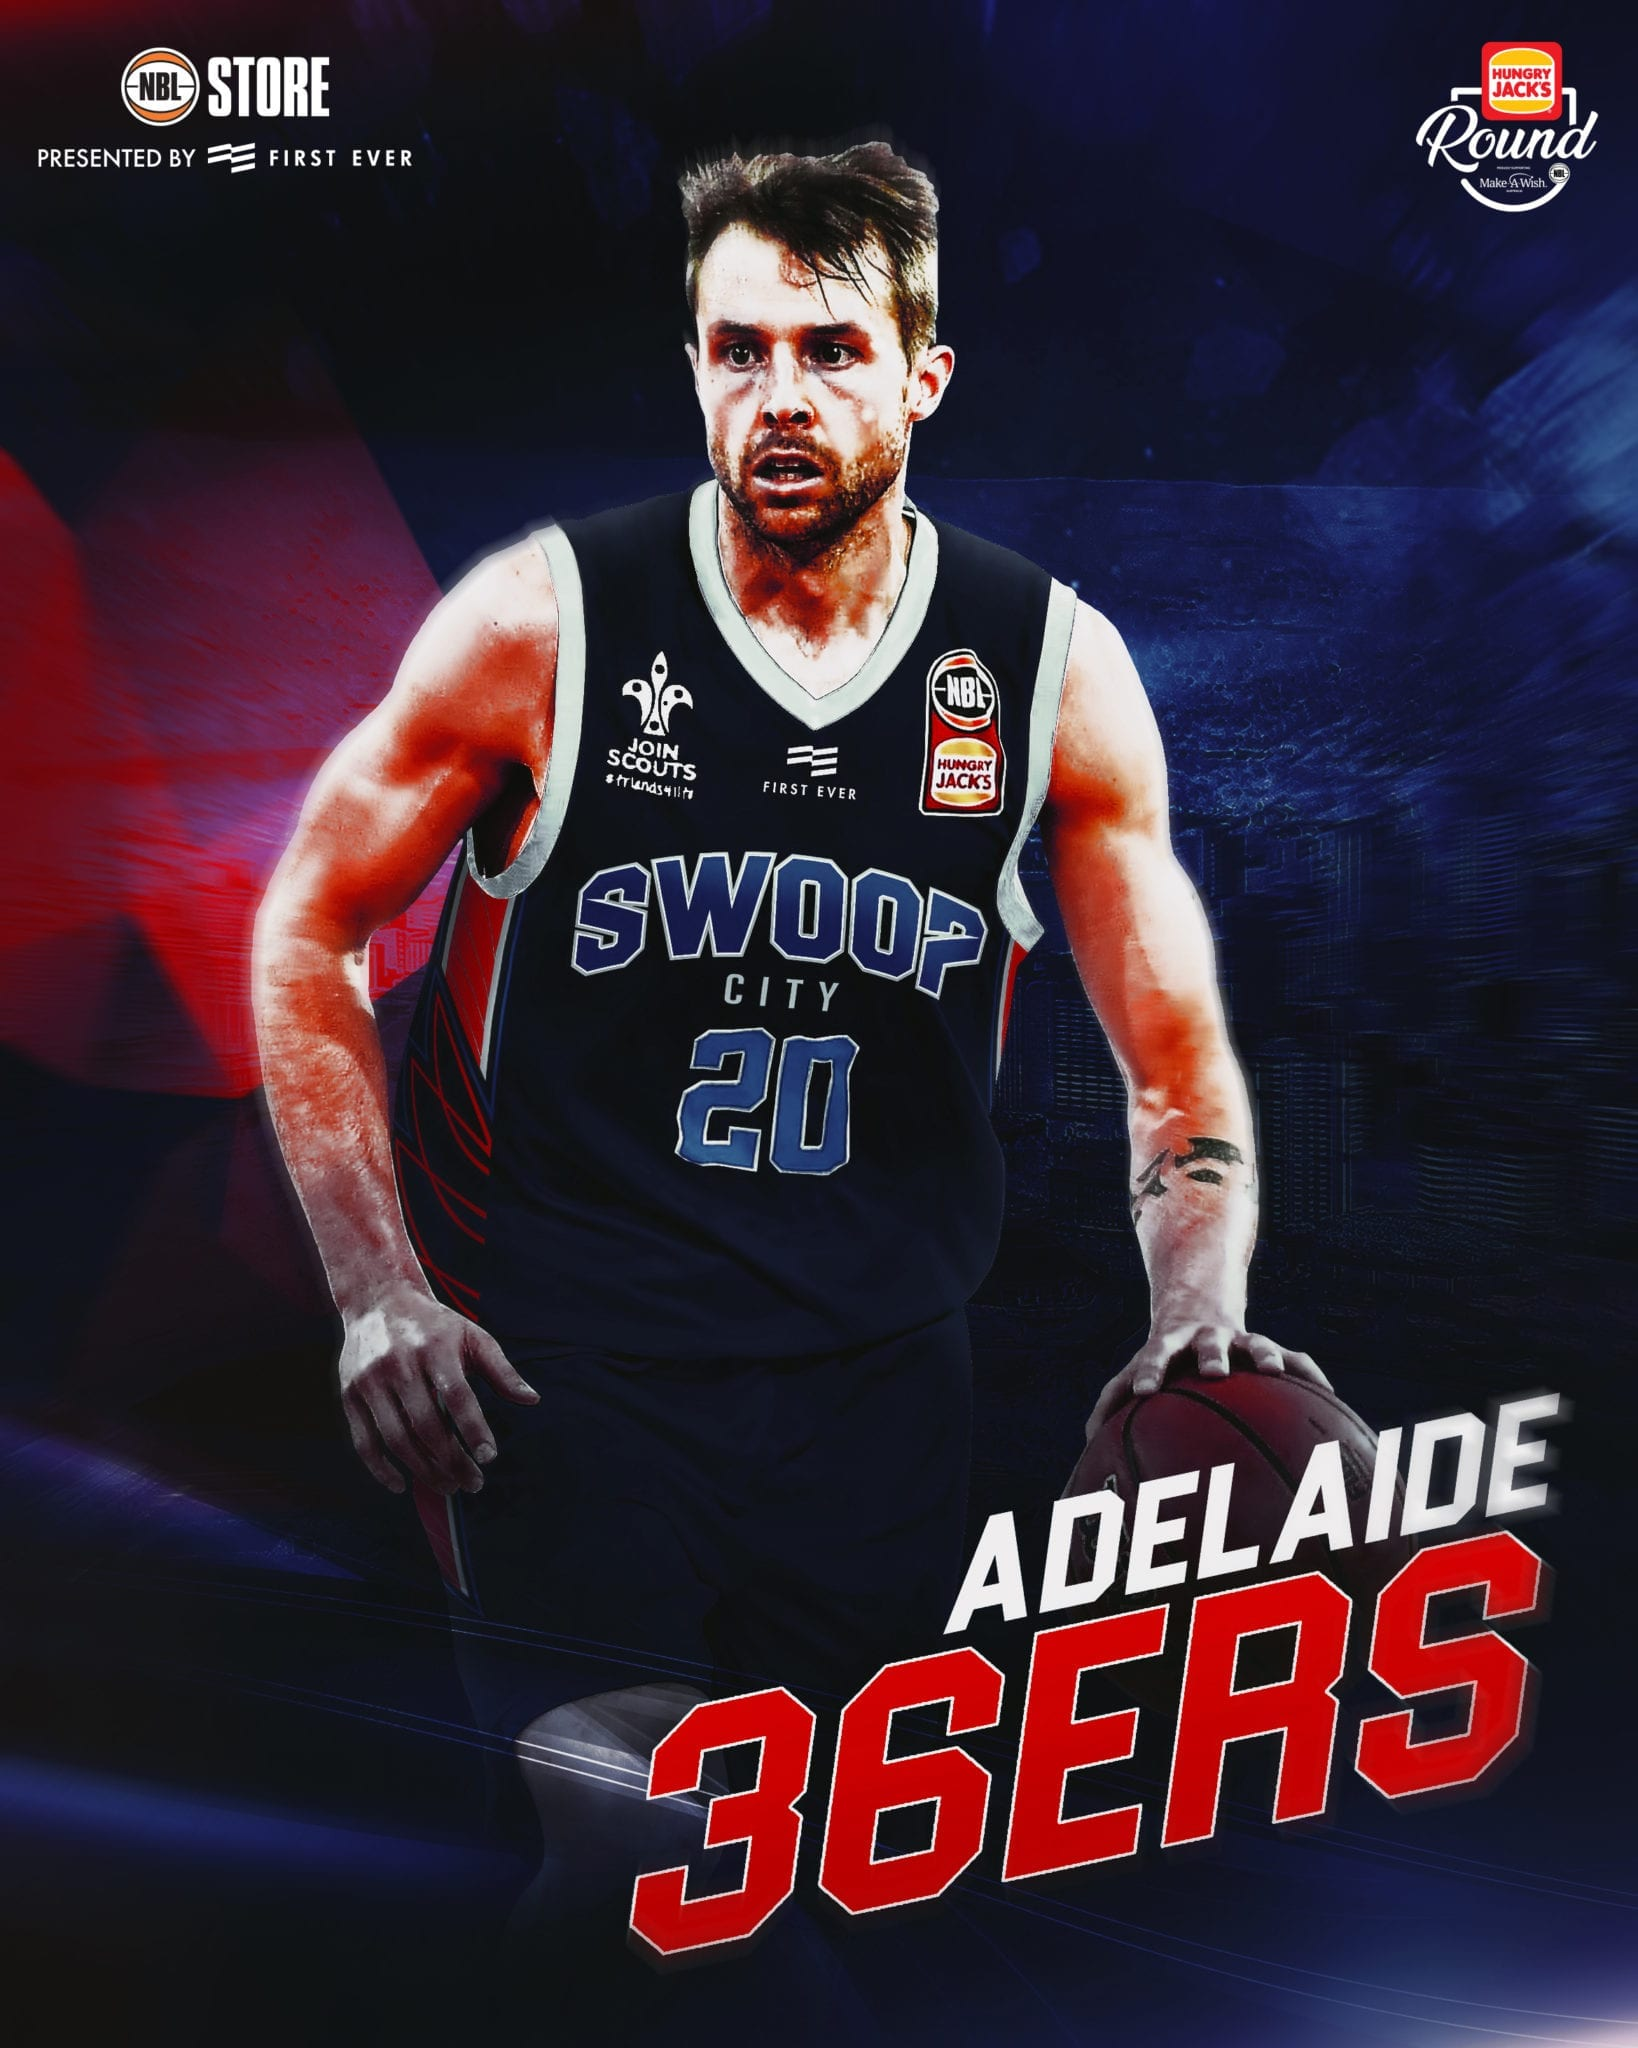 ADELAIDE – The 36ers have plenty to shout about especially when it comes to  the Swoop City jersey. The shaped side panels represent the outline of  wings as ... 62ef73622bdd